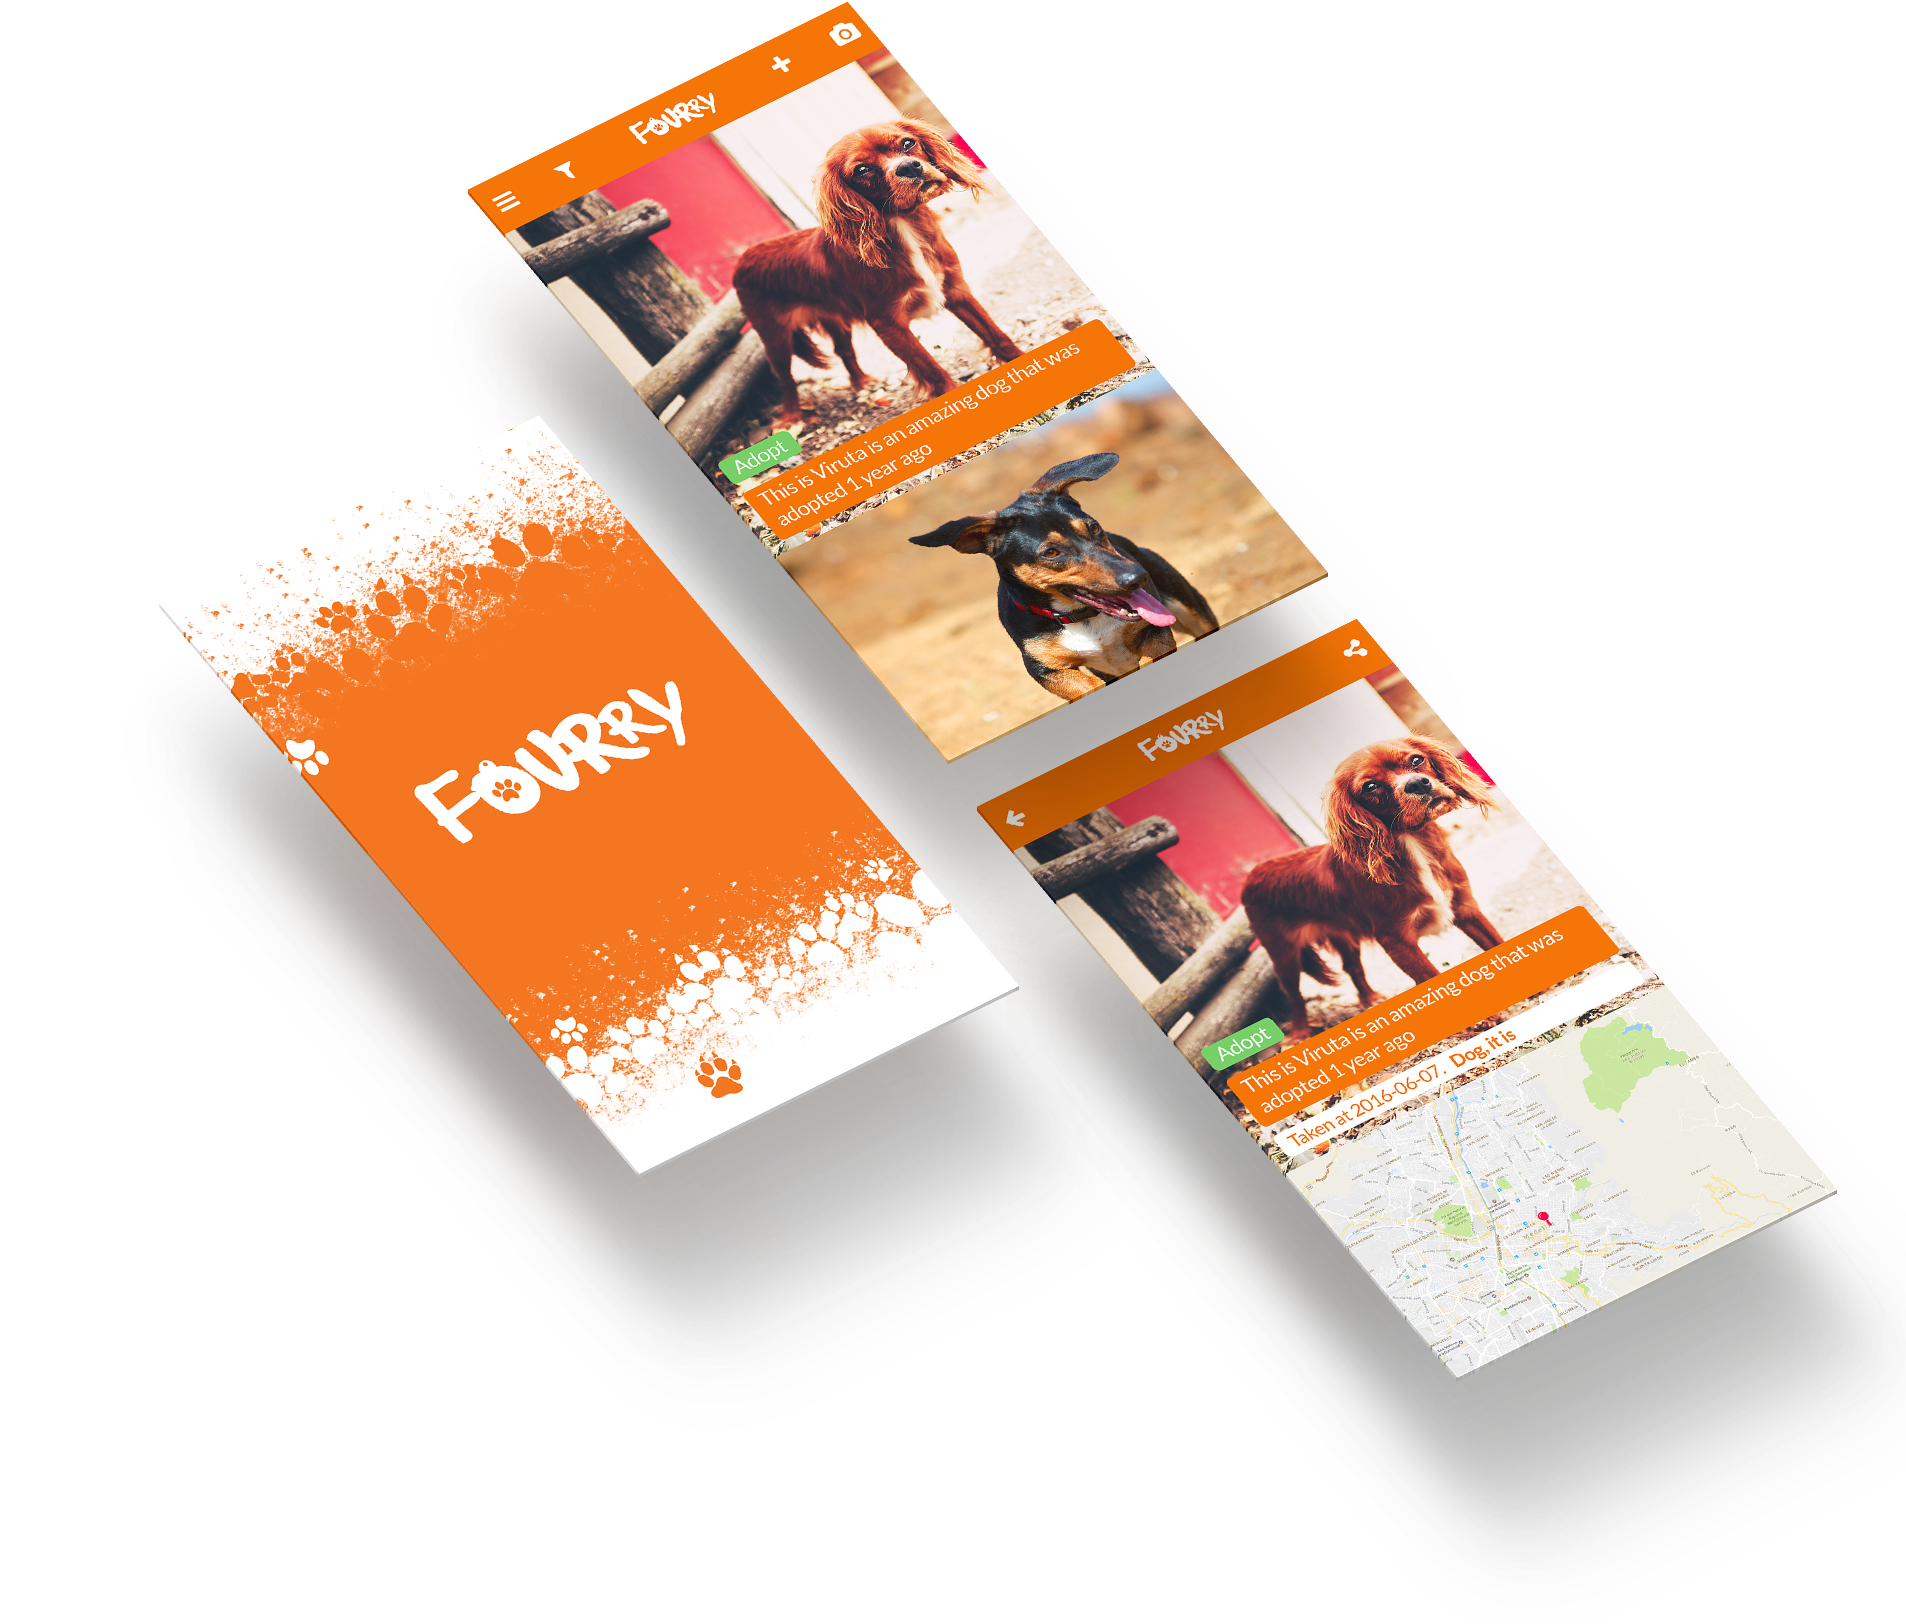 Fourry application - save a pet now!